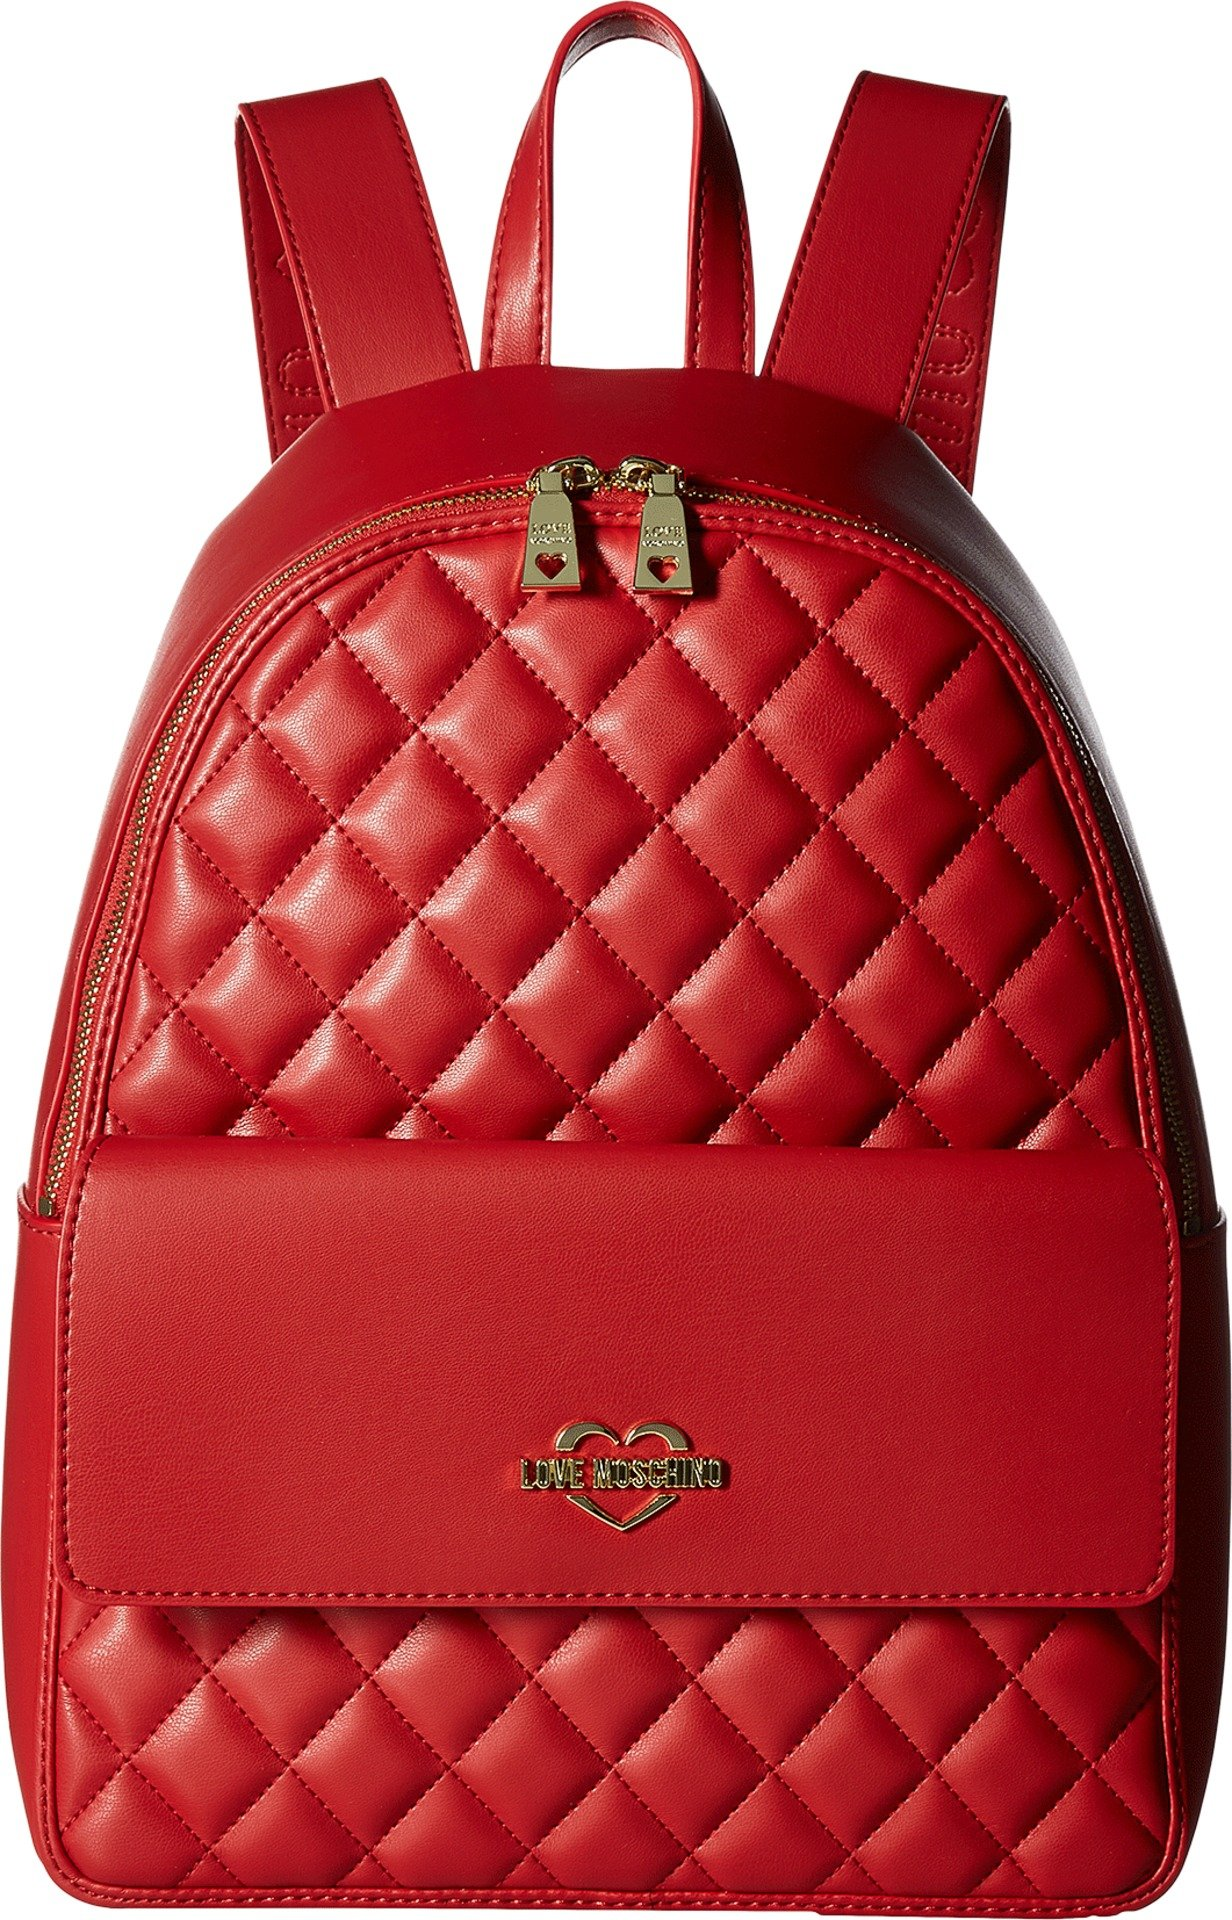 LOVE Moschino Women's Super Quilted Backpack Red One Size